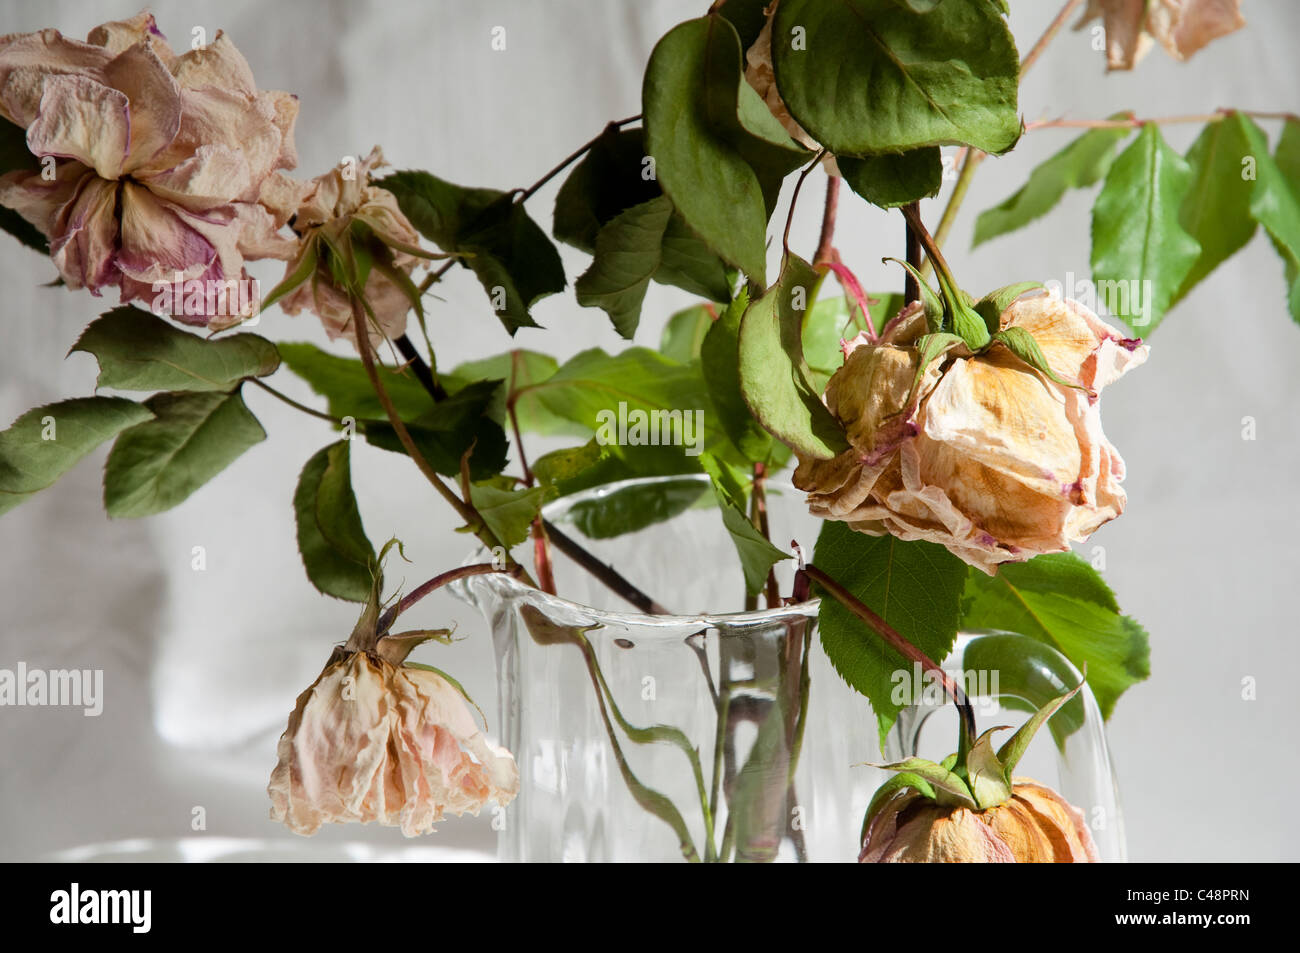 Old and faded roses in a glass jug. - Stock Image